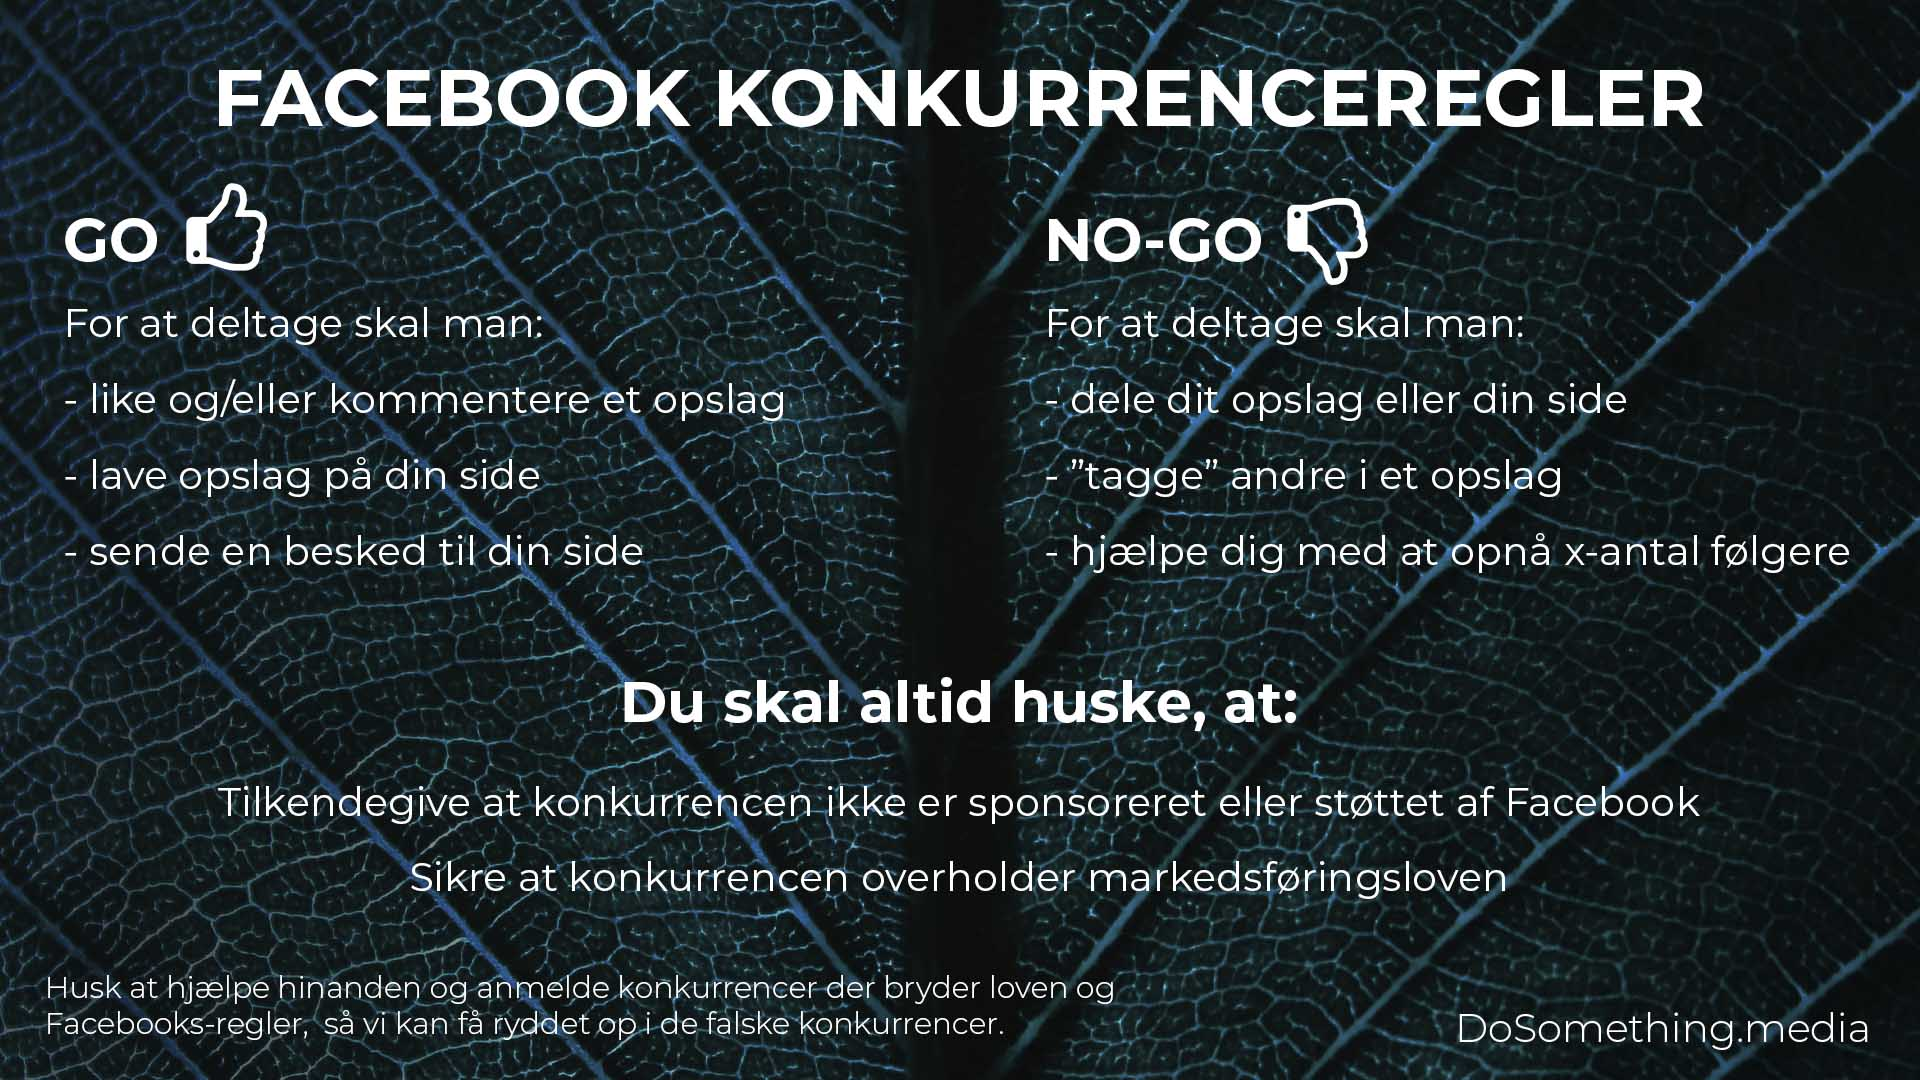 Facebook konkurrenceregler 2020